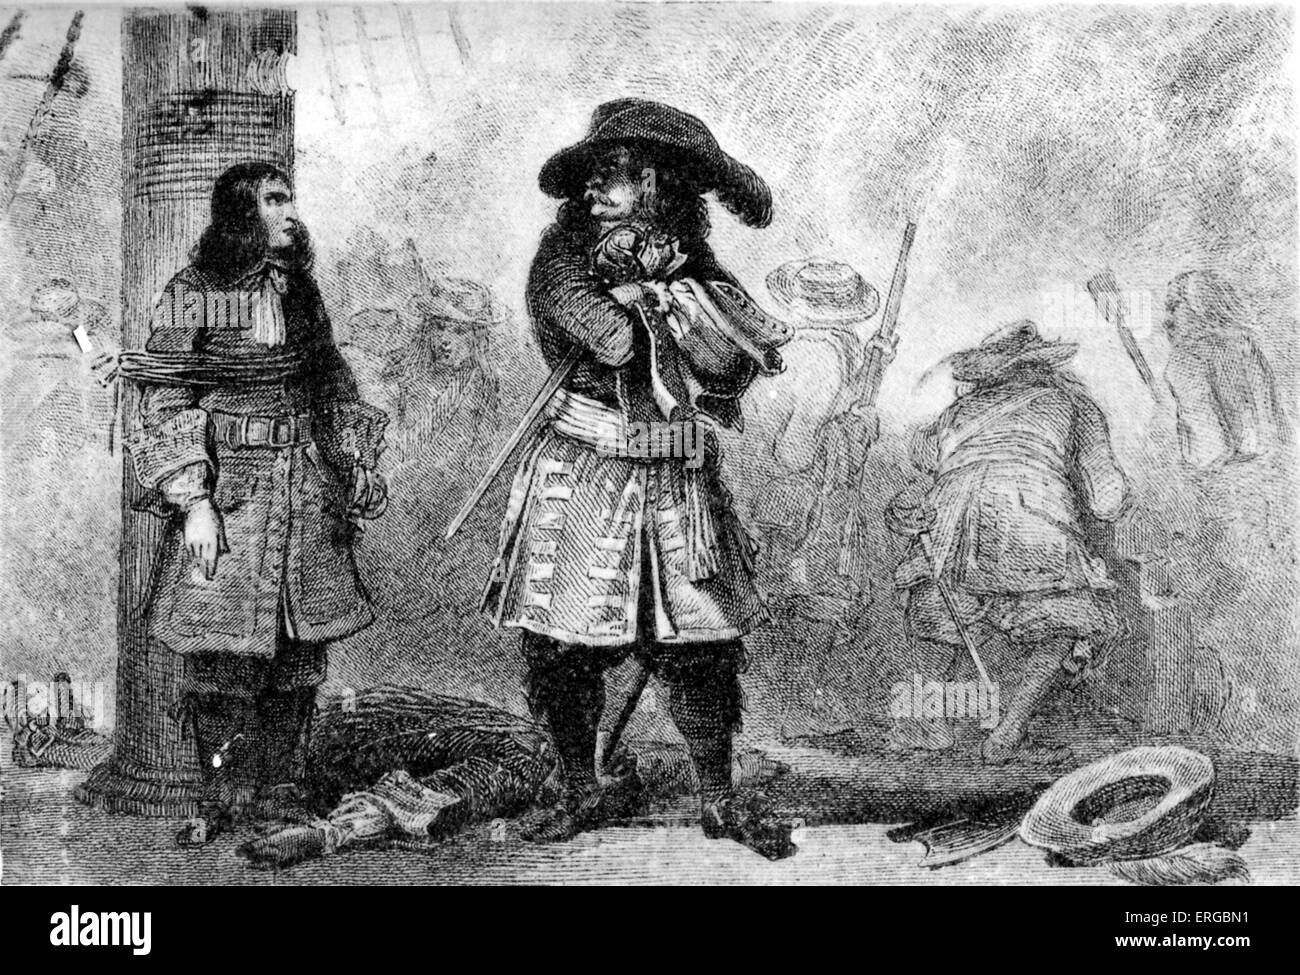 Jean Bart, Flemish sailor, served the French crown as naval commander and privateer. JB: 21 October 1651 – 27 April - Stock Image